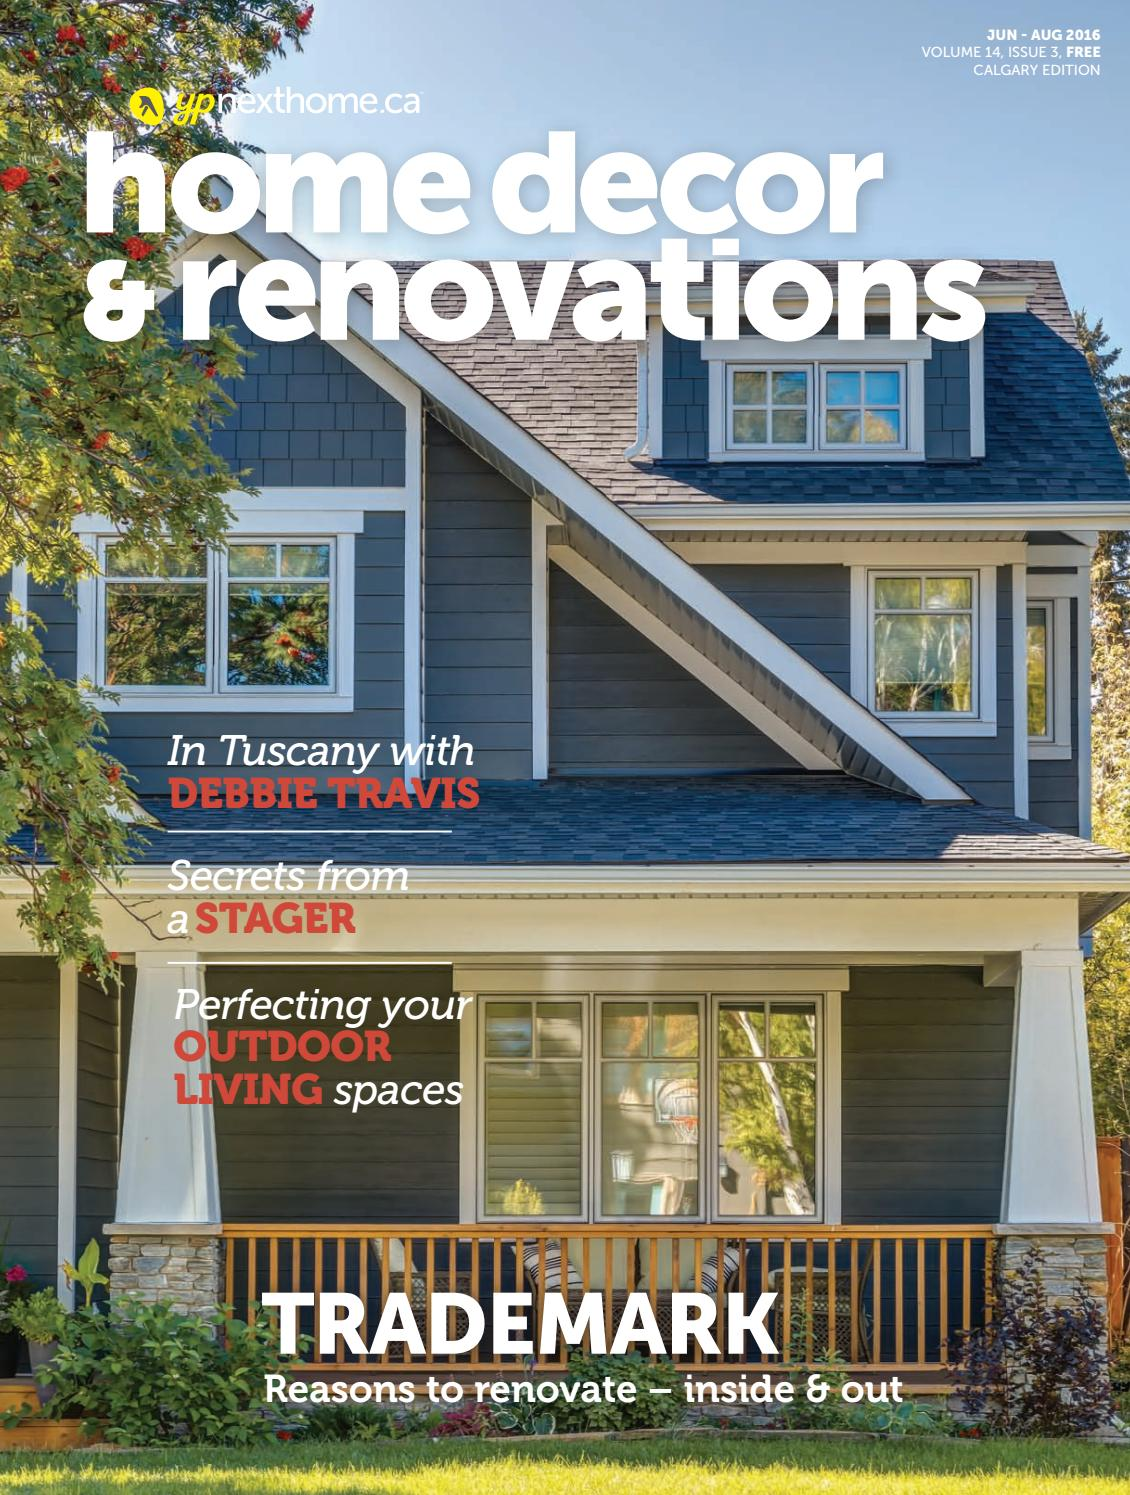 calgary home decor renovations junaug 2016 by yp nexthome issuu - Home Decor Calgary